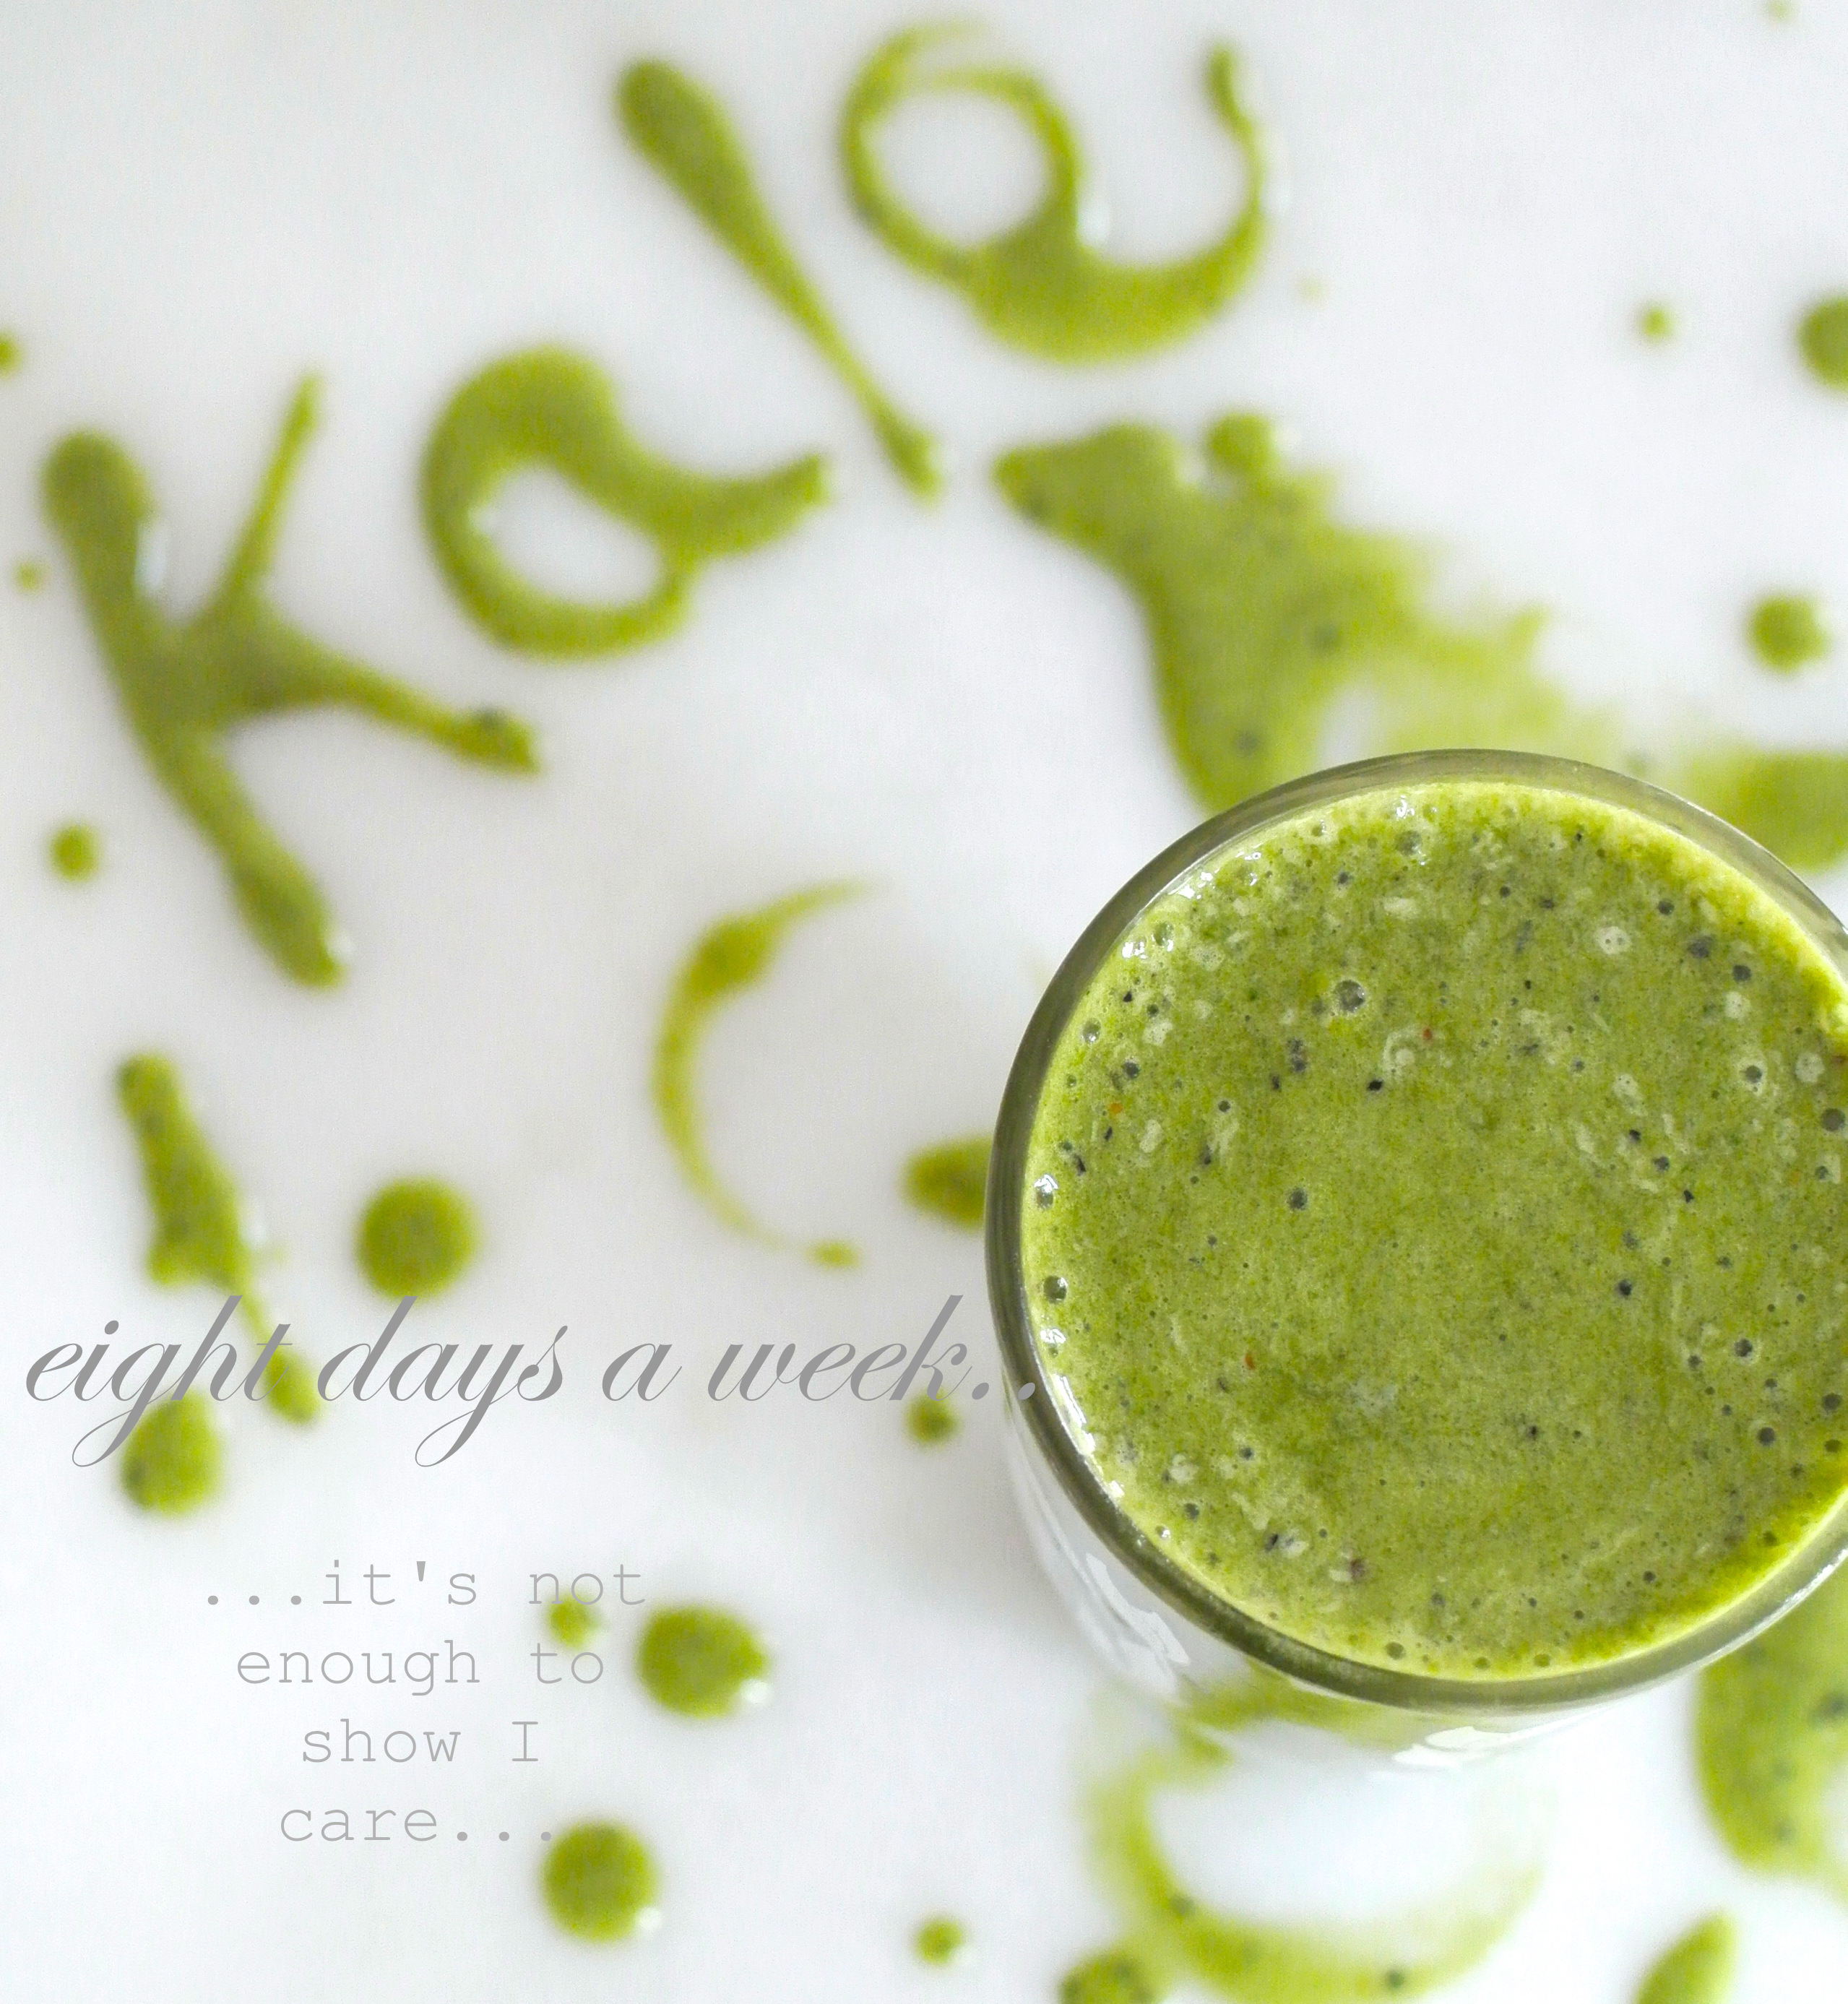 how to put kale in a smoothie